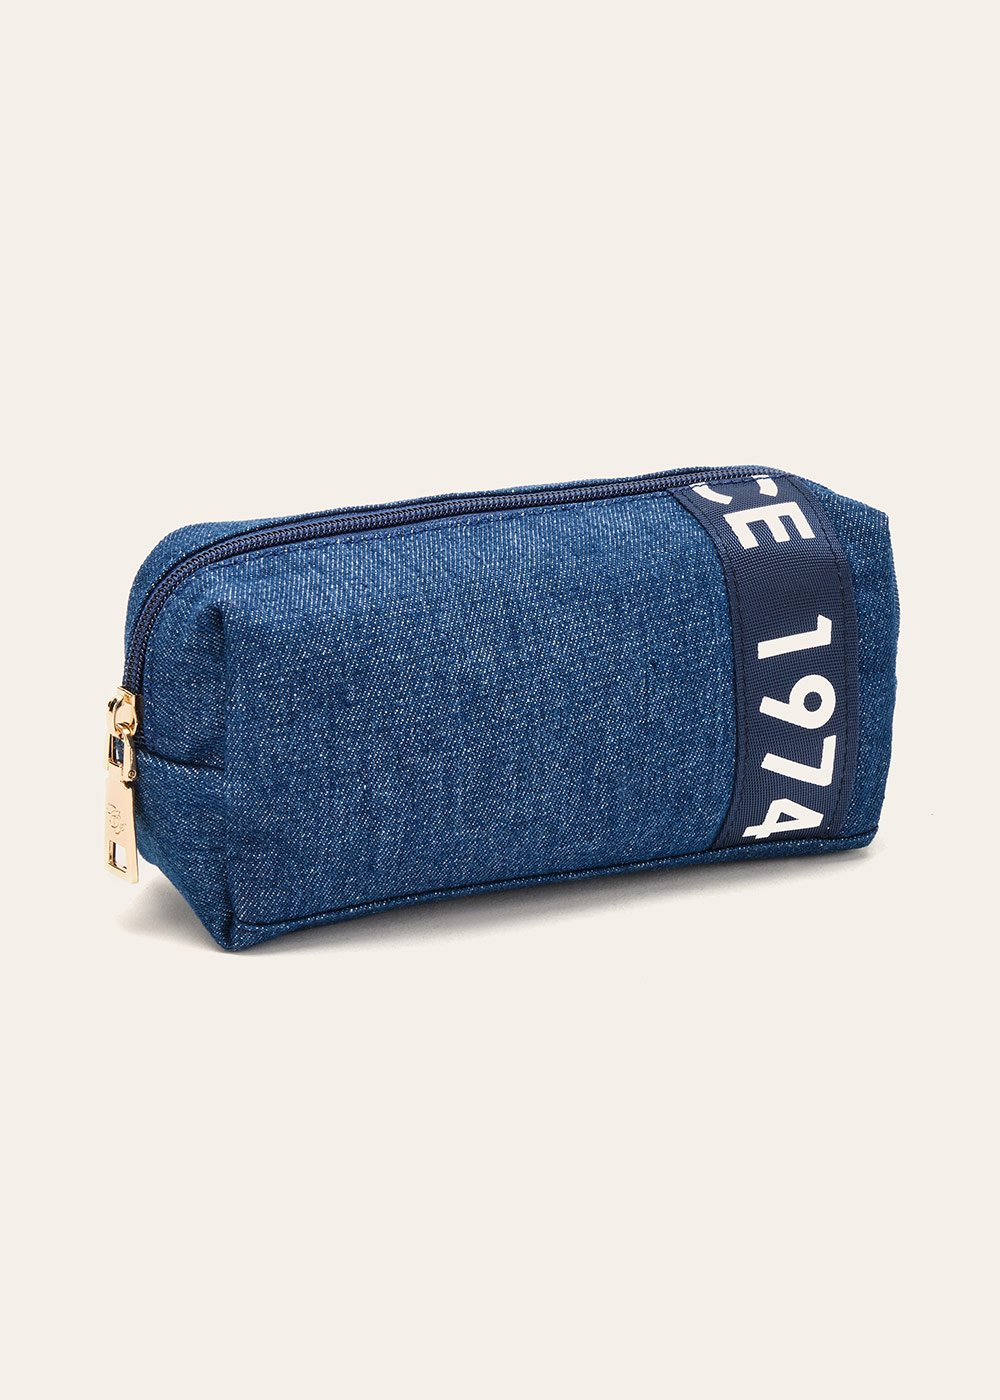 Baddy cotton denim vanity case - Medium Denim - Woman